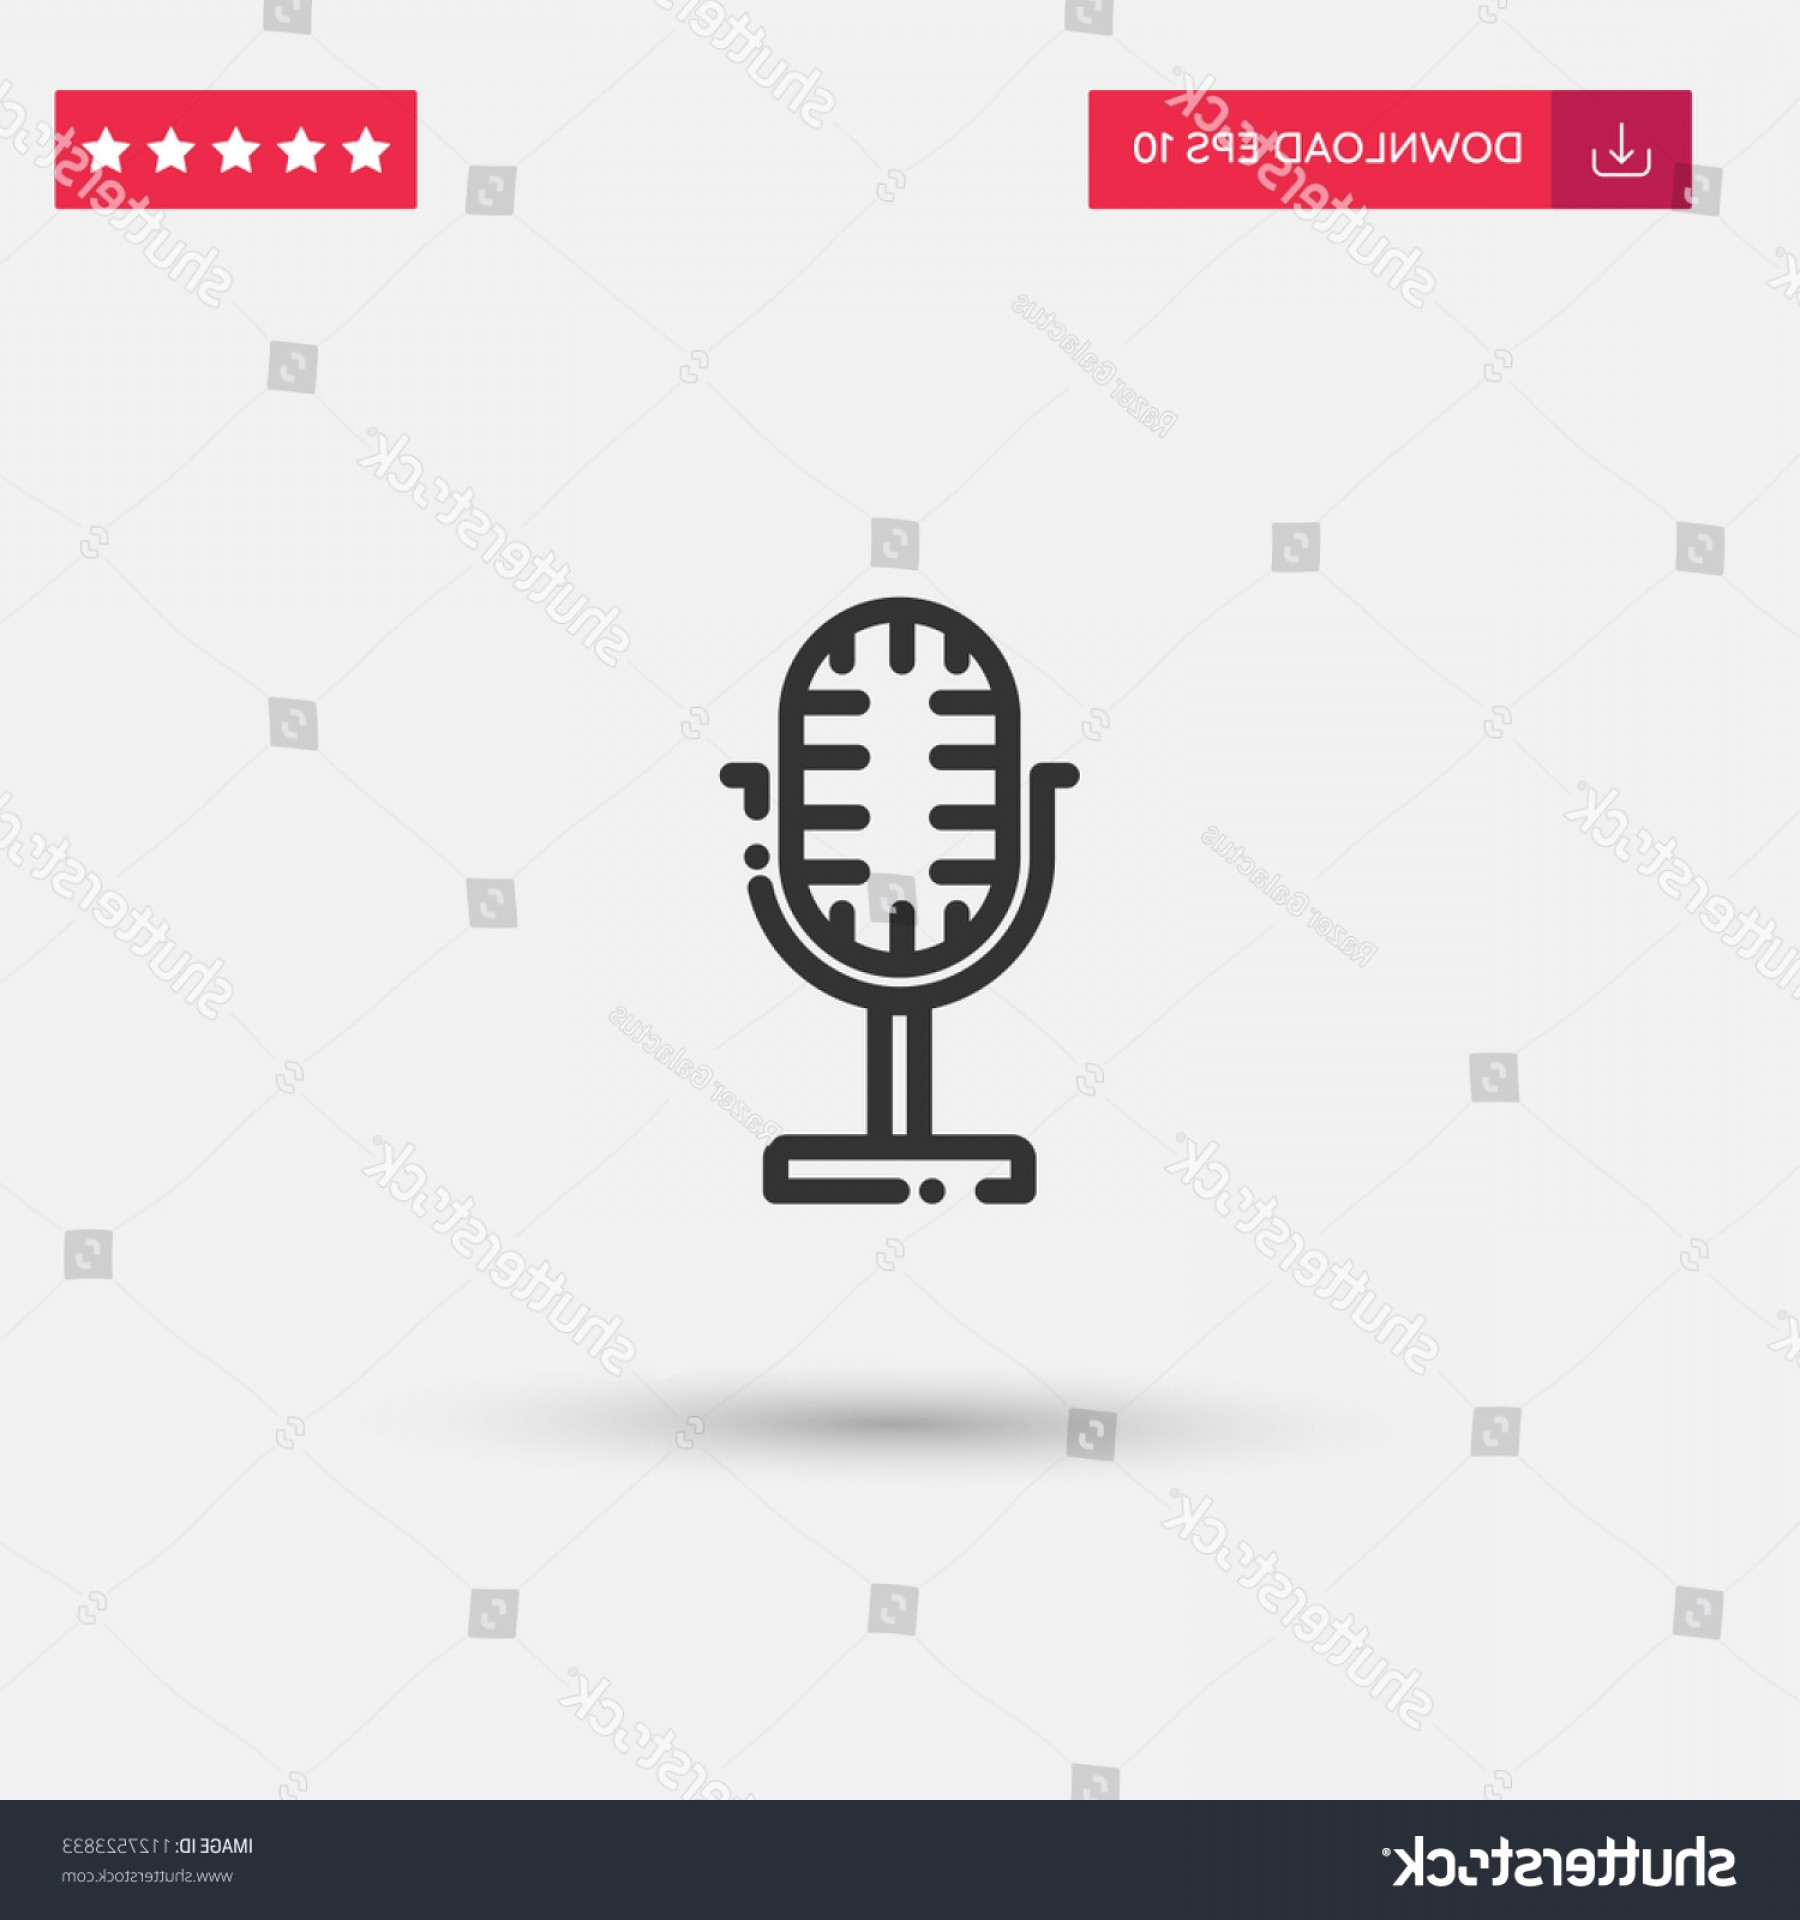 Mics Vector Designs: Outline Mics Icon Isolated On Grey